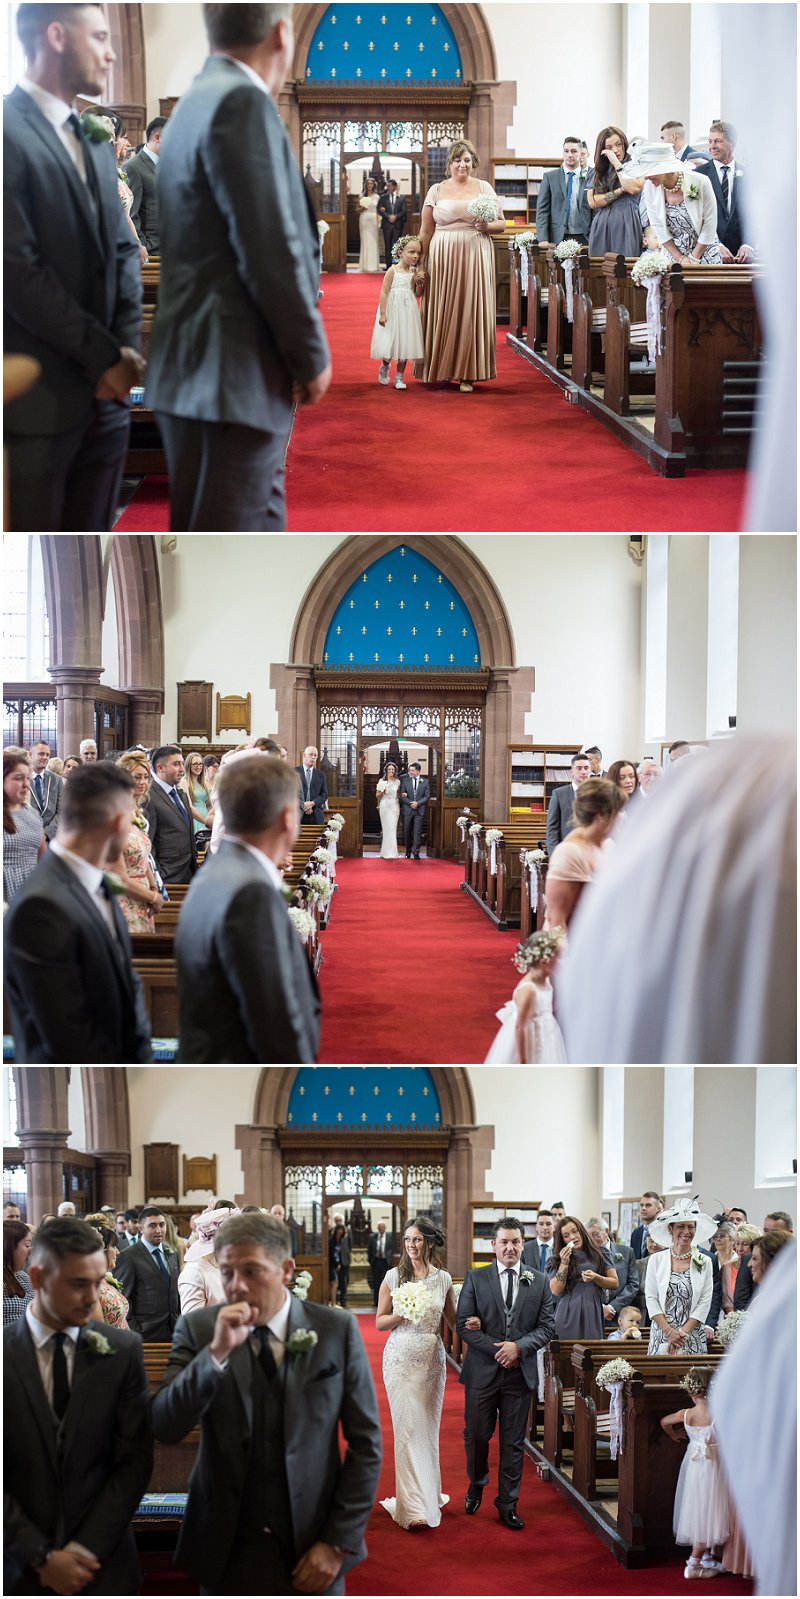 Bride walking down aisle in Lancashire